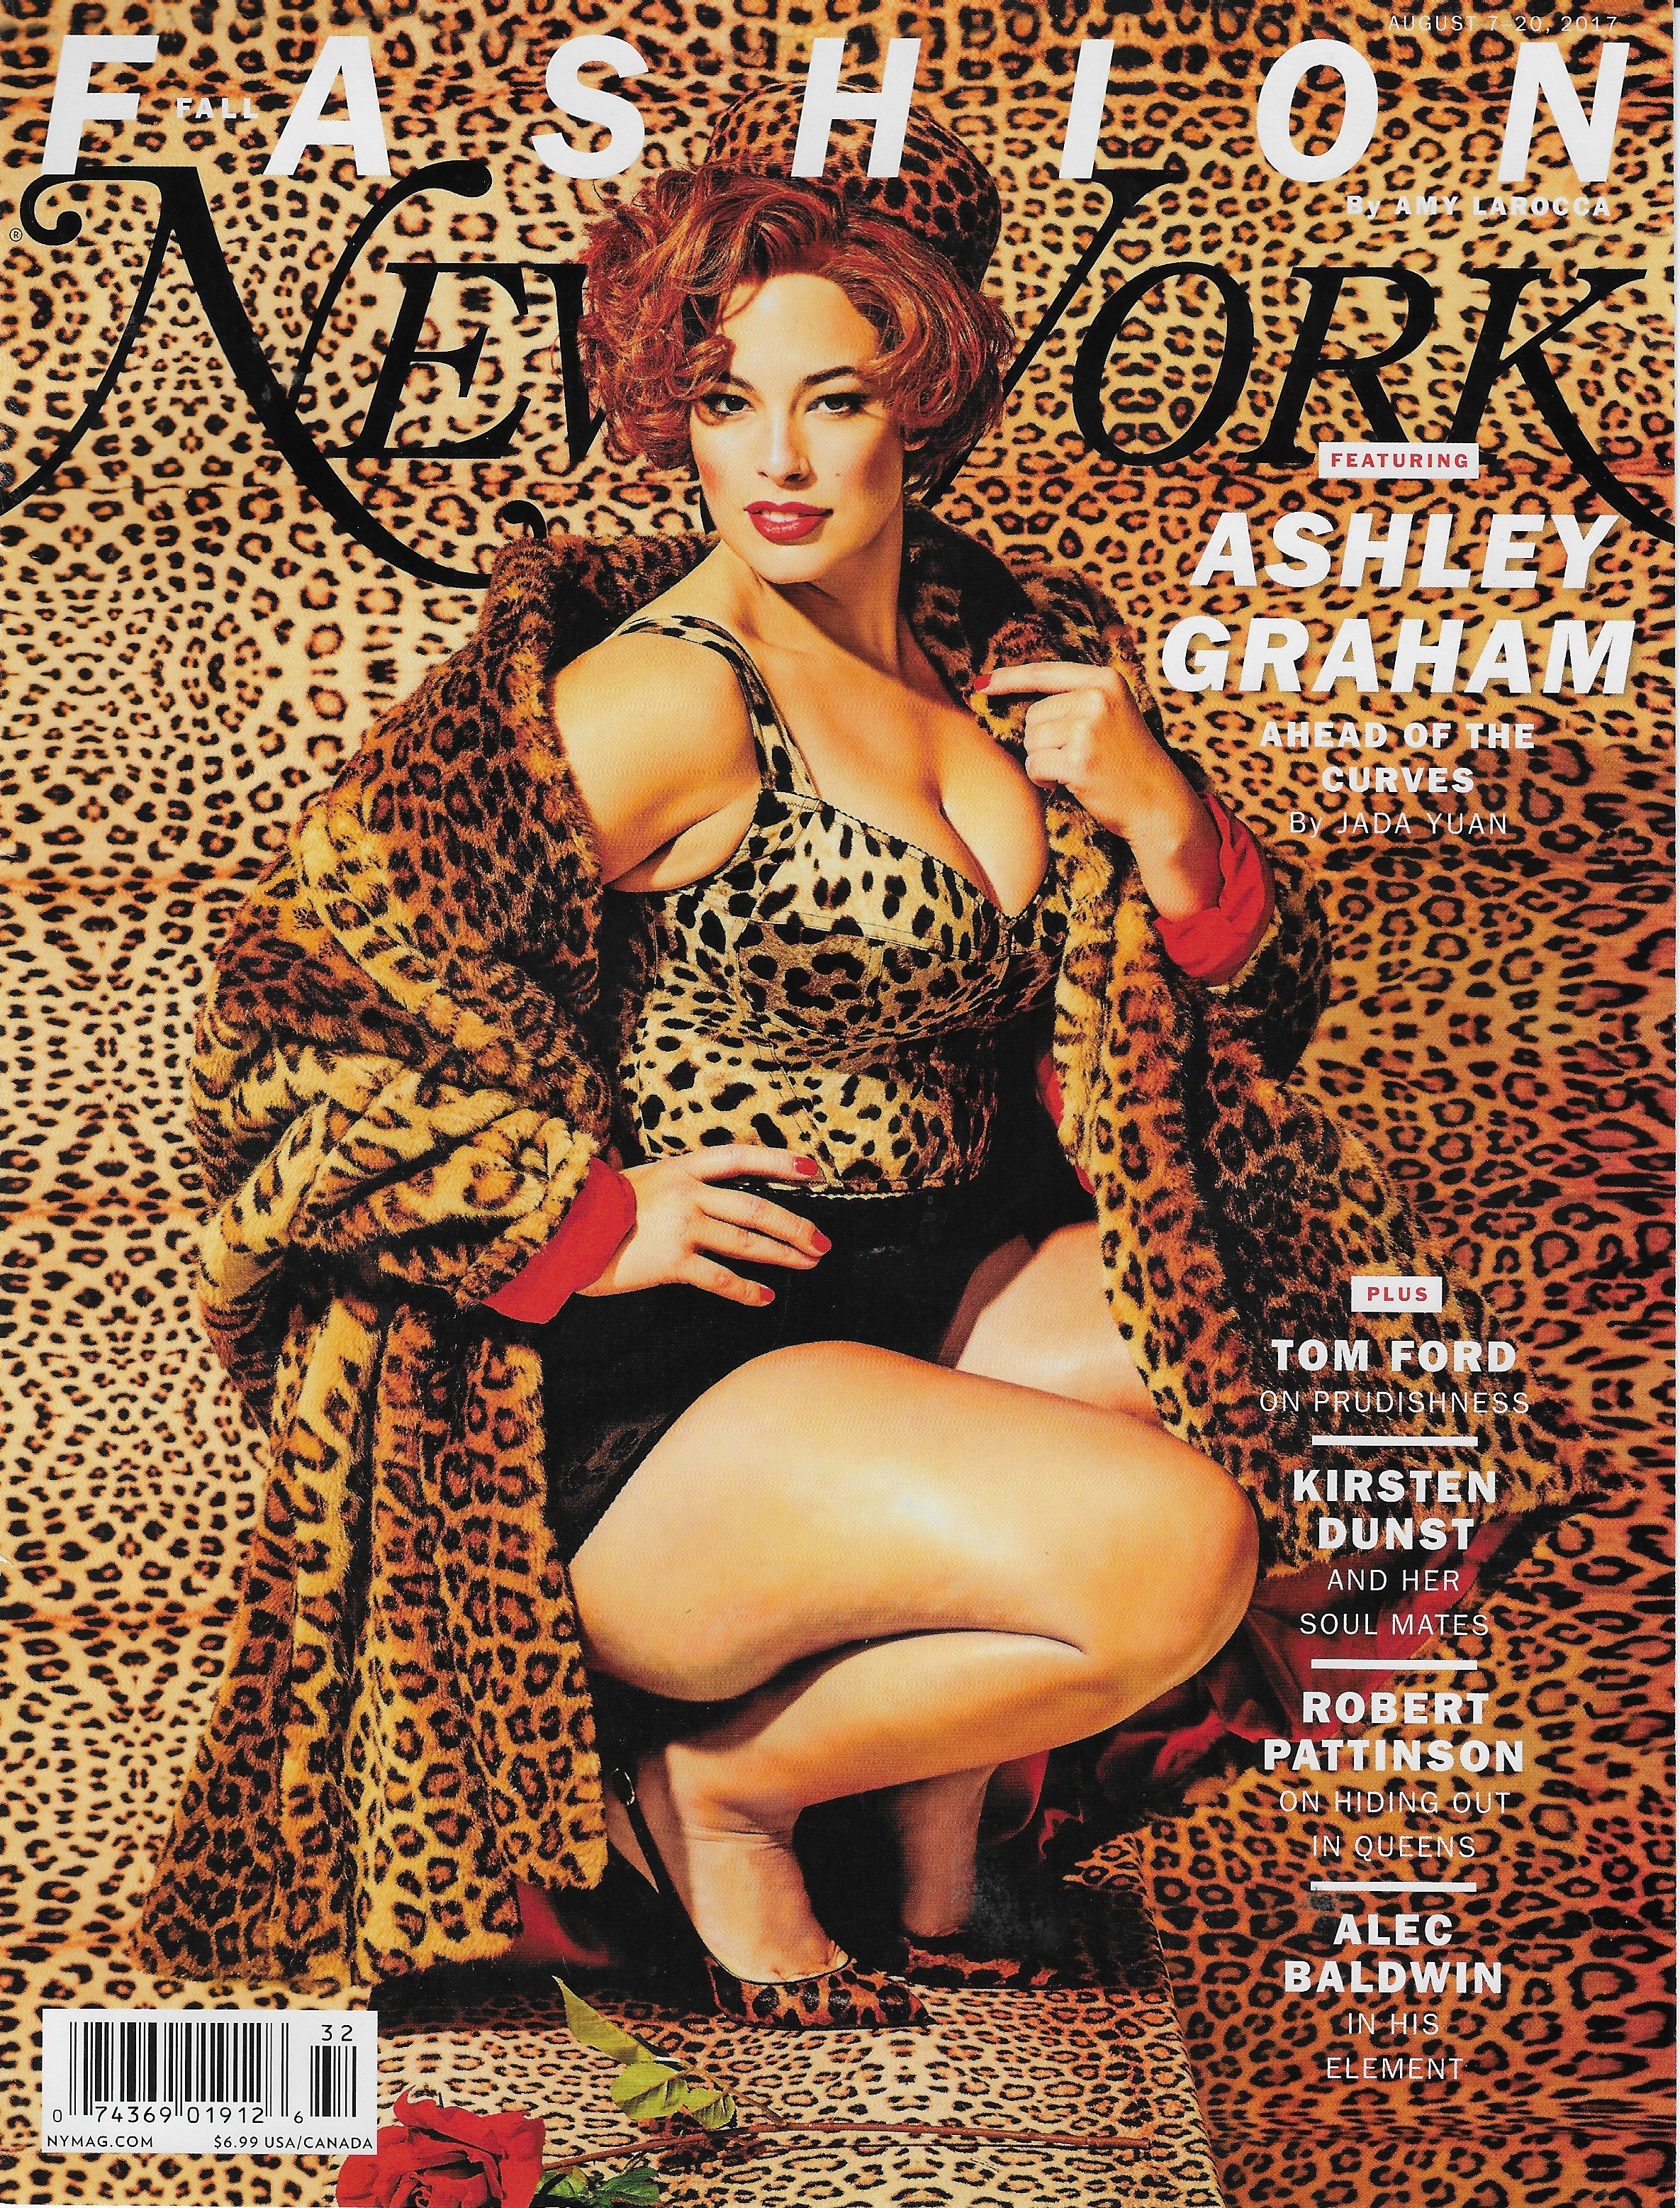 New York Magazine / Maurizio Cattelan / Ashley Graham